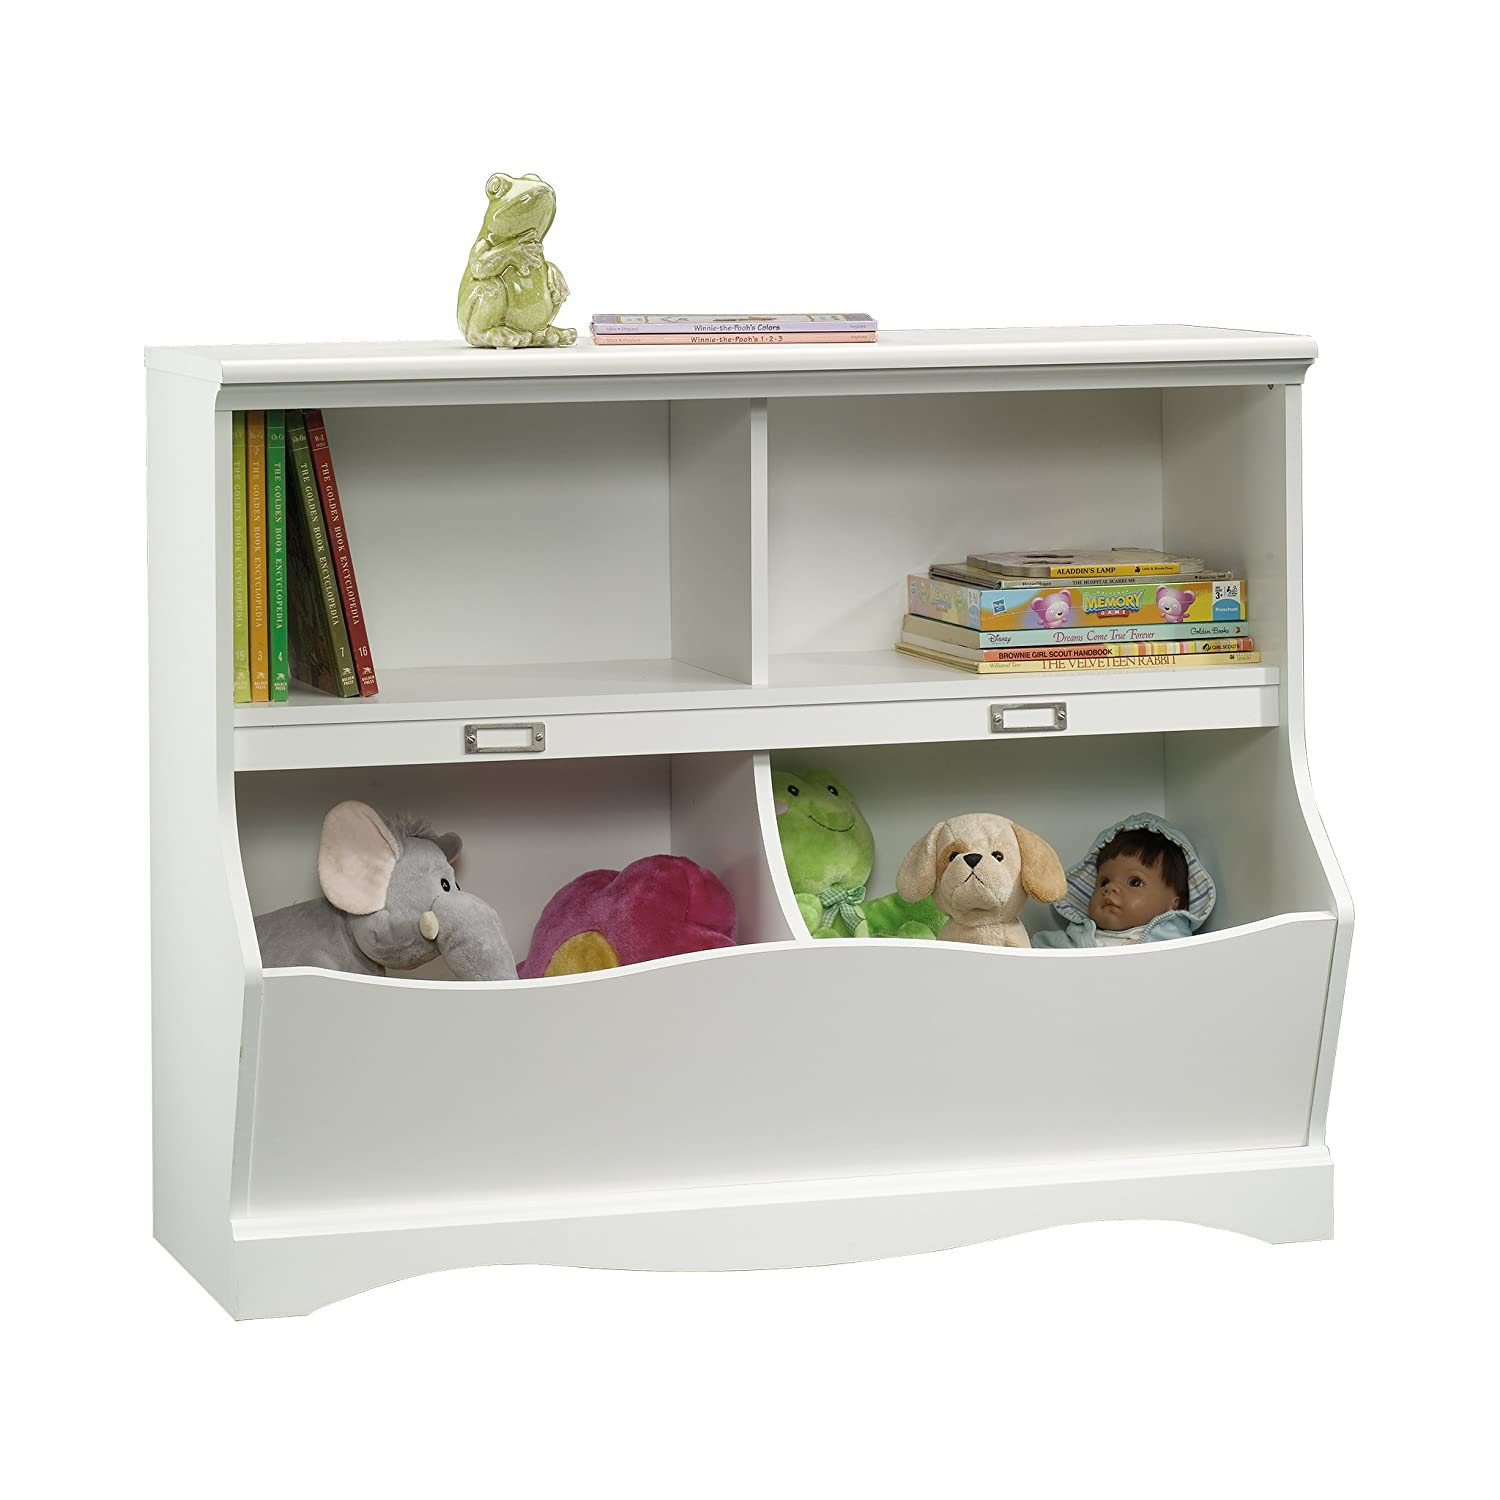 "Sauder 414436 Pogo Bookcase/Footboard, L: 41.10"" x W: 14.49"" x H: 32.84"", Soft White finish"